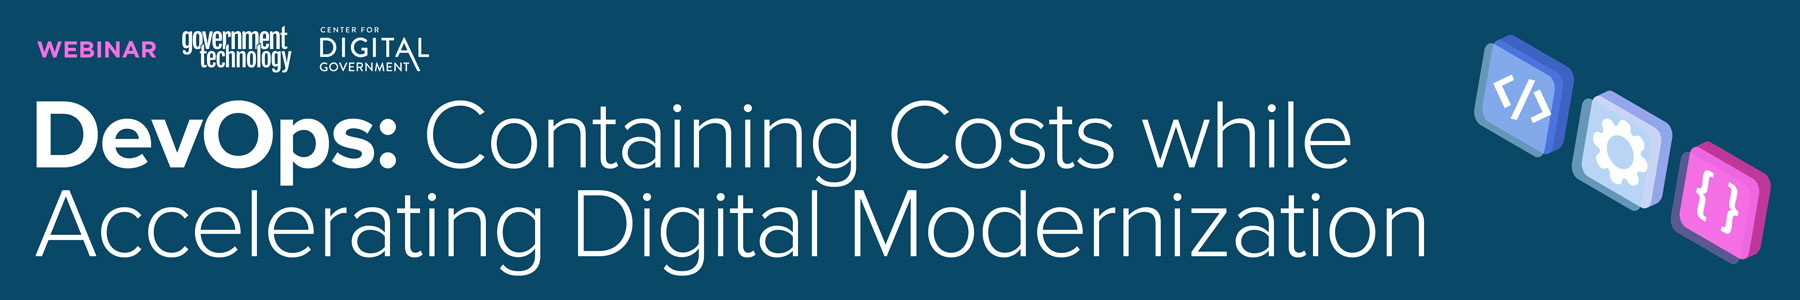 DevOps: Containing Costs while Accelerating Digital Modernization